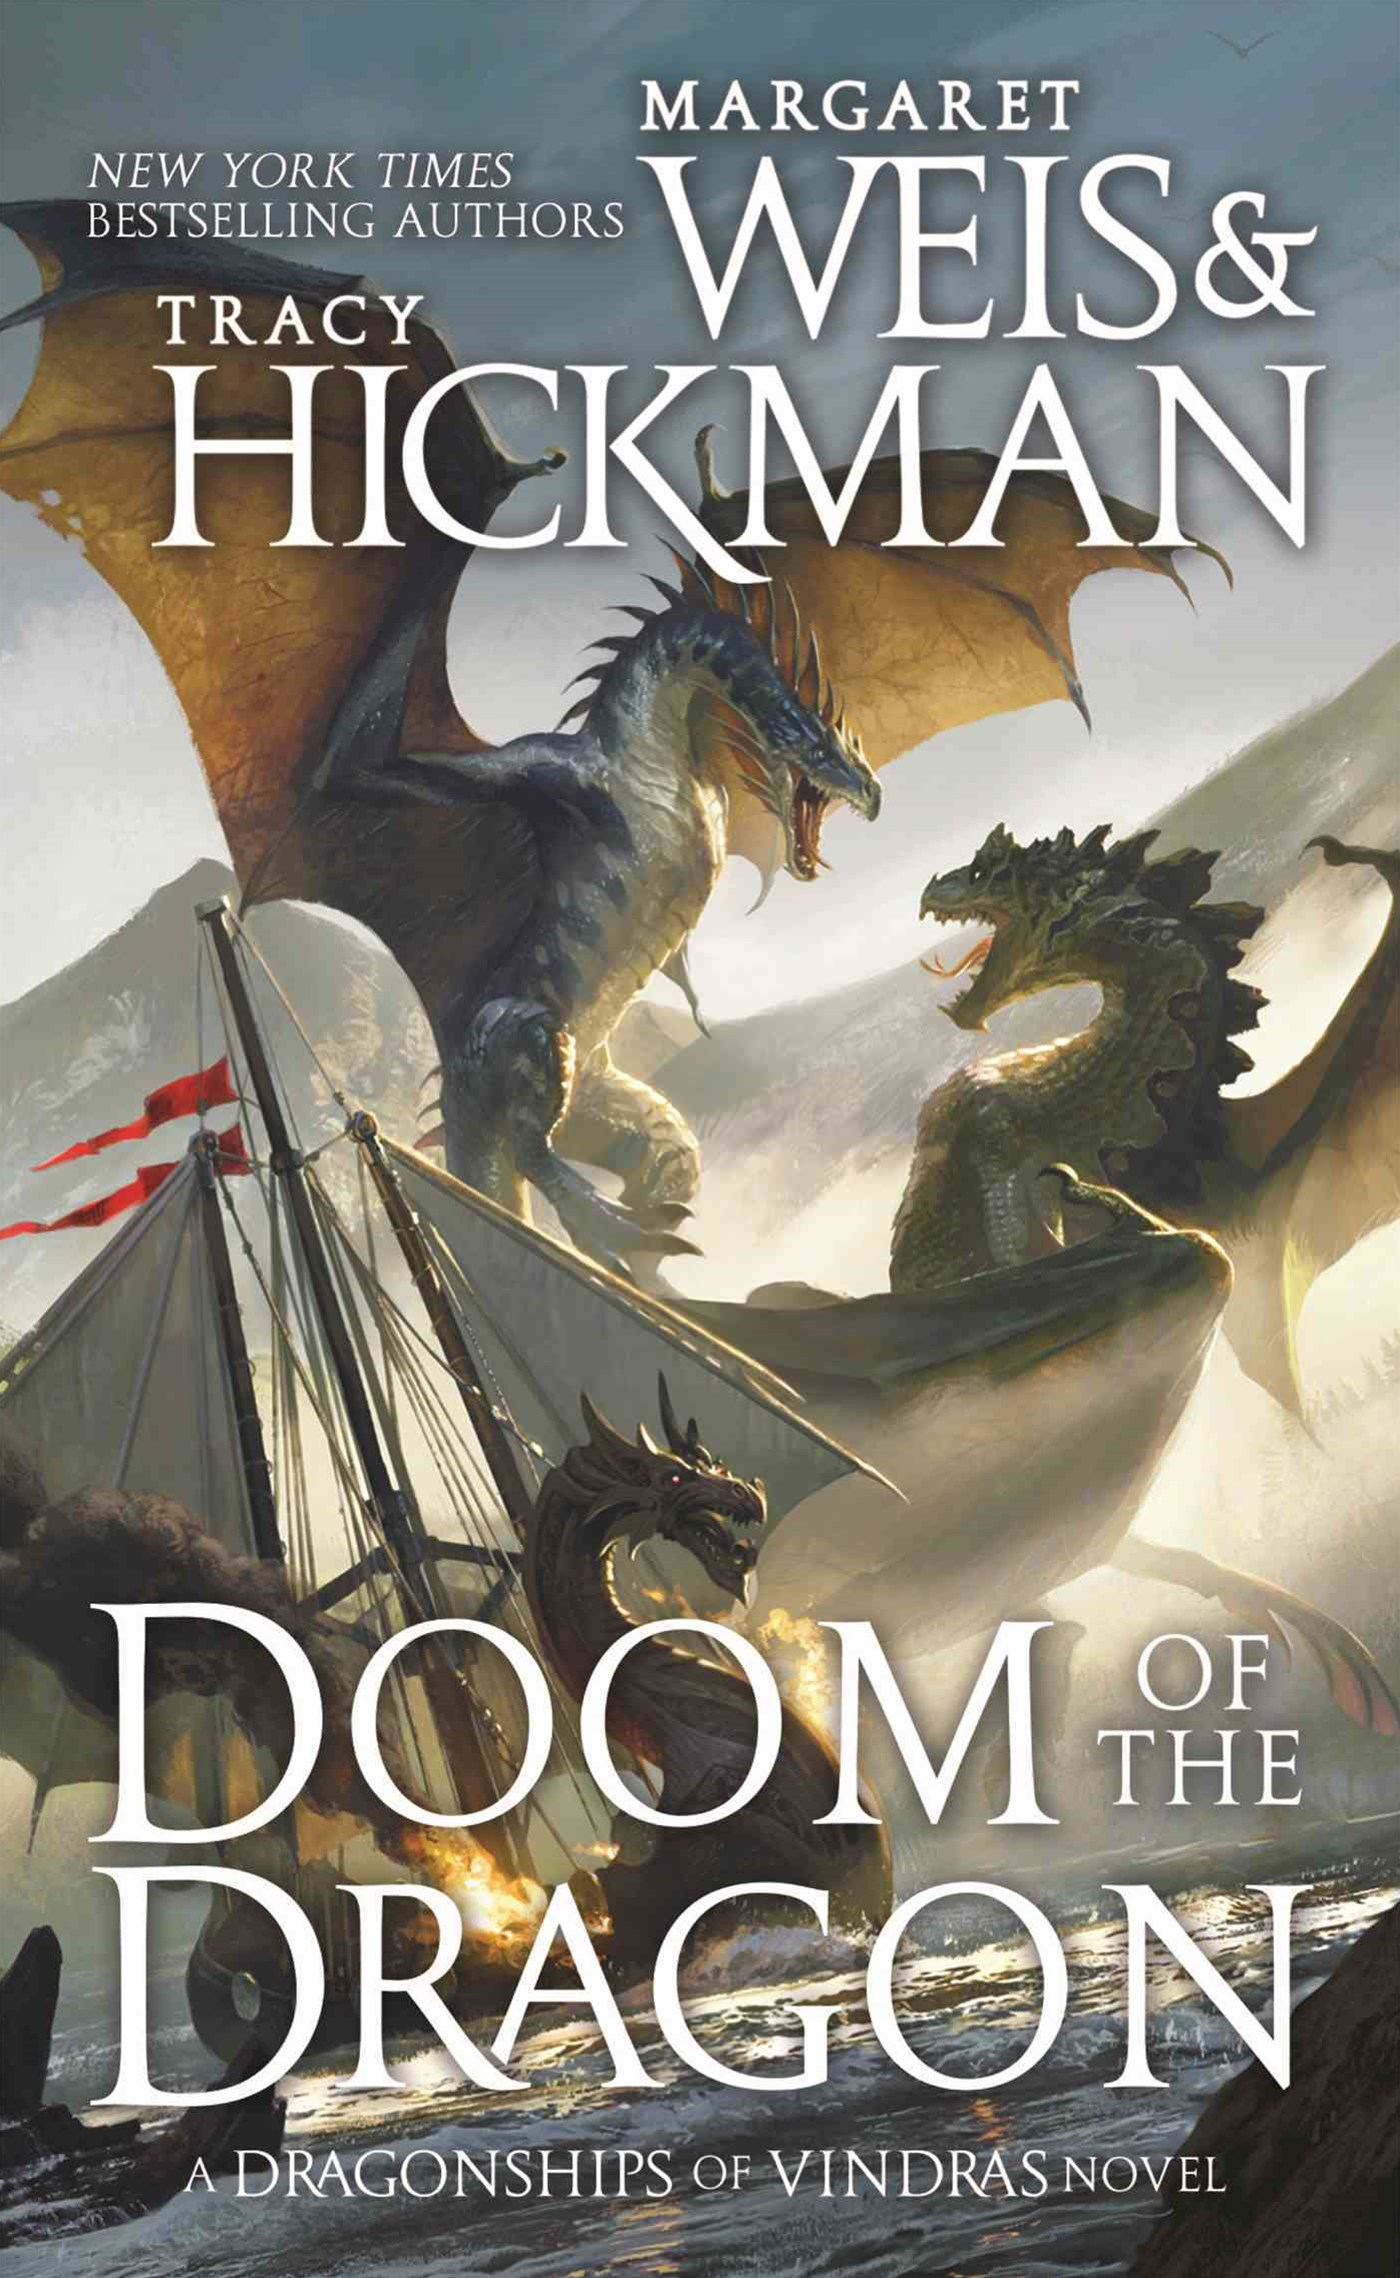 Doom of the Dragon